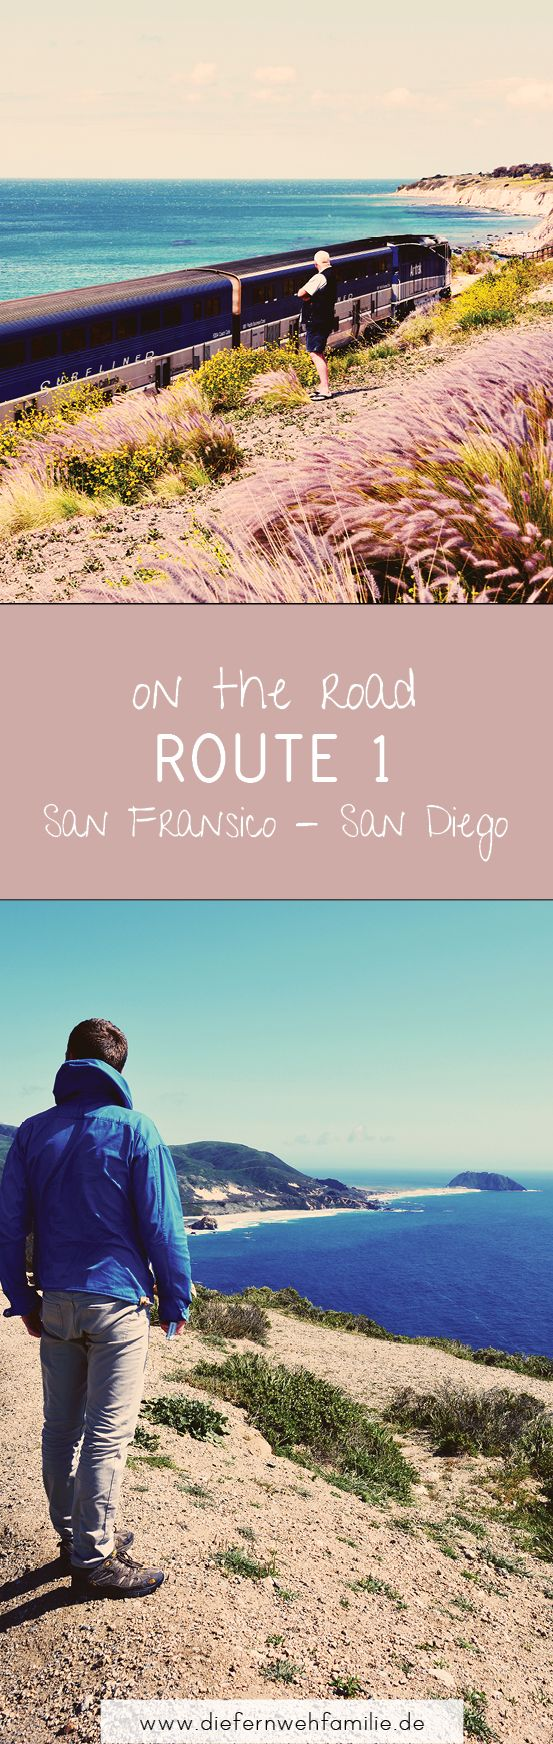 On the road -Route 1- Californien. DieFernwehFamilie